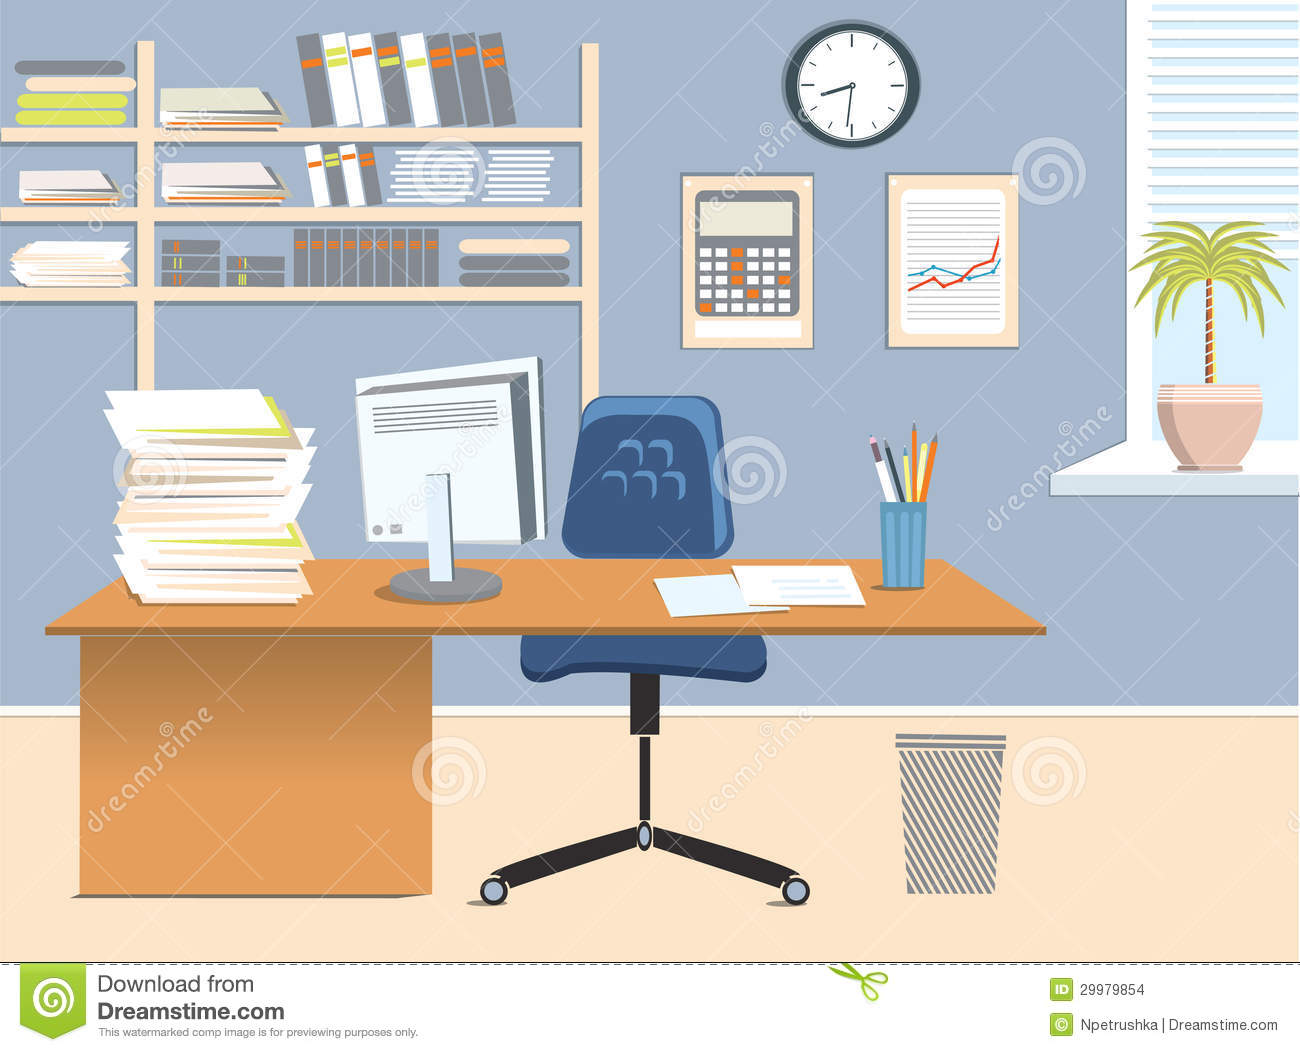 Office room stock vector. Illustration of table, inside - 29979854